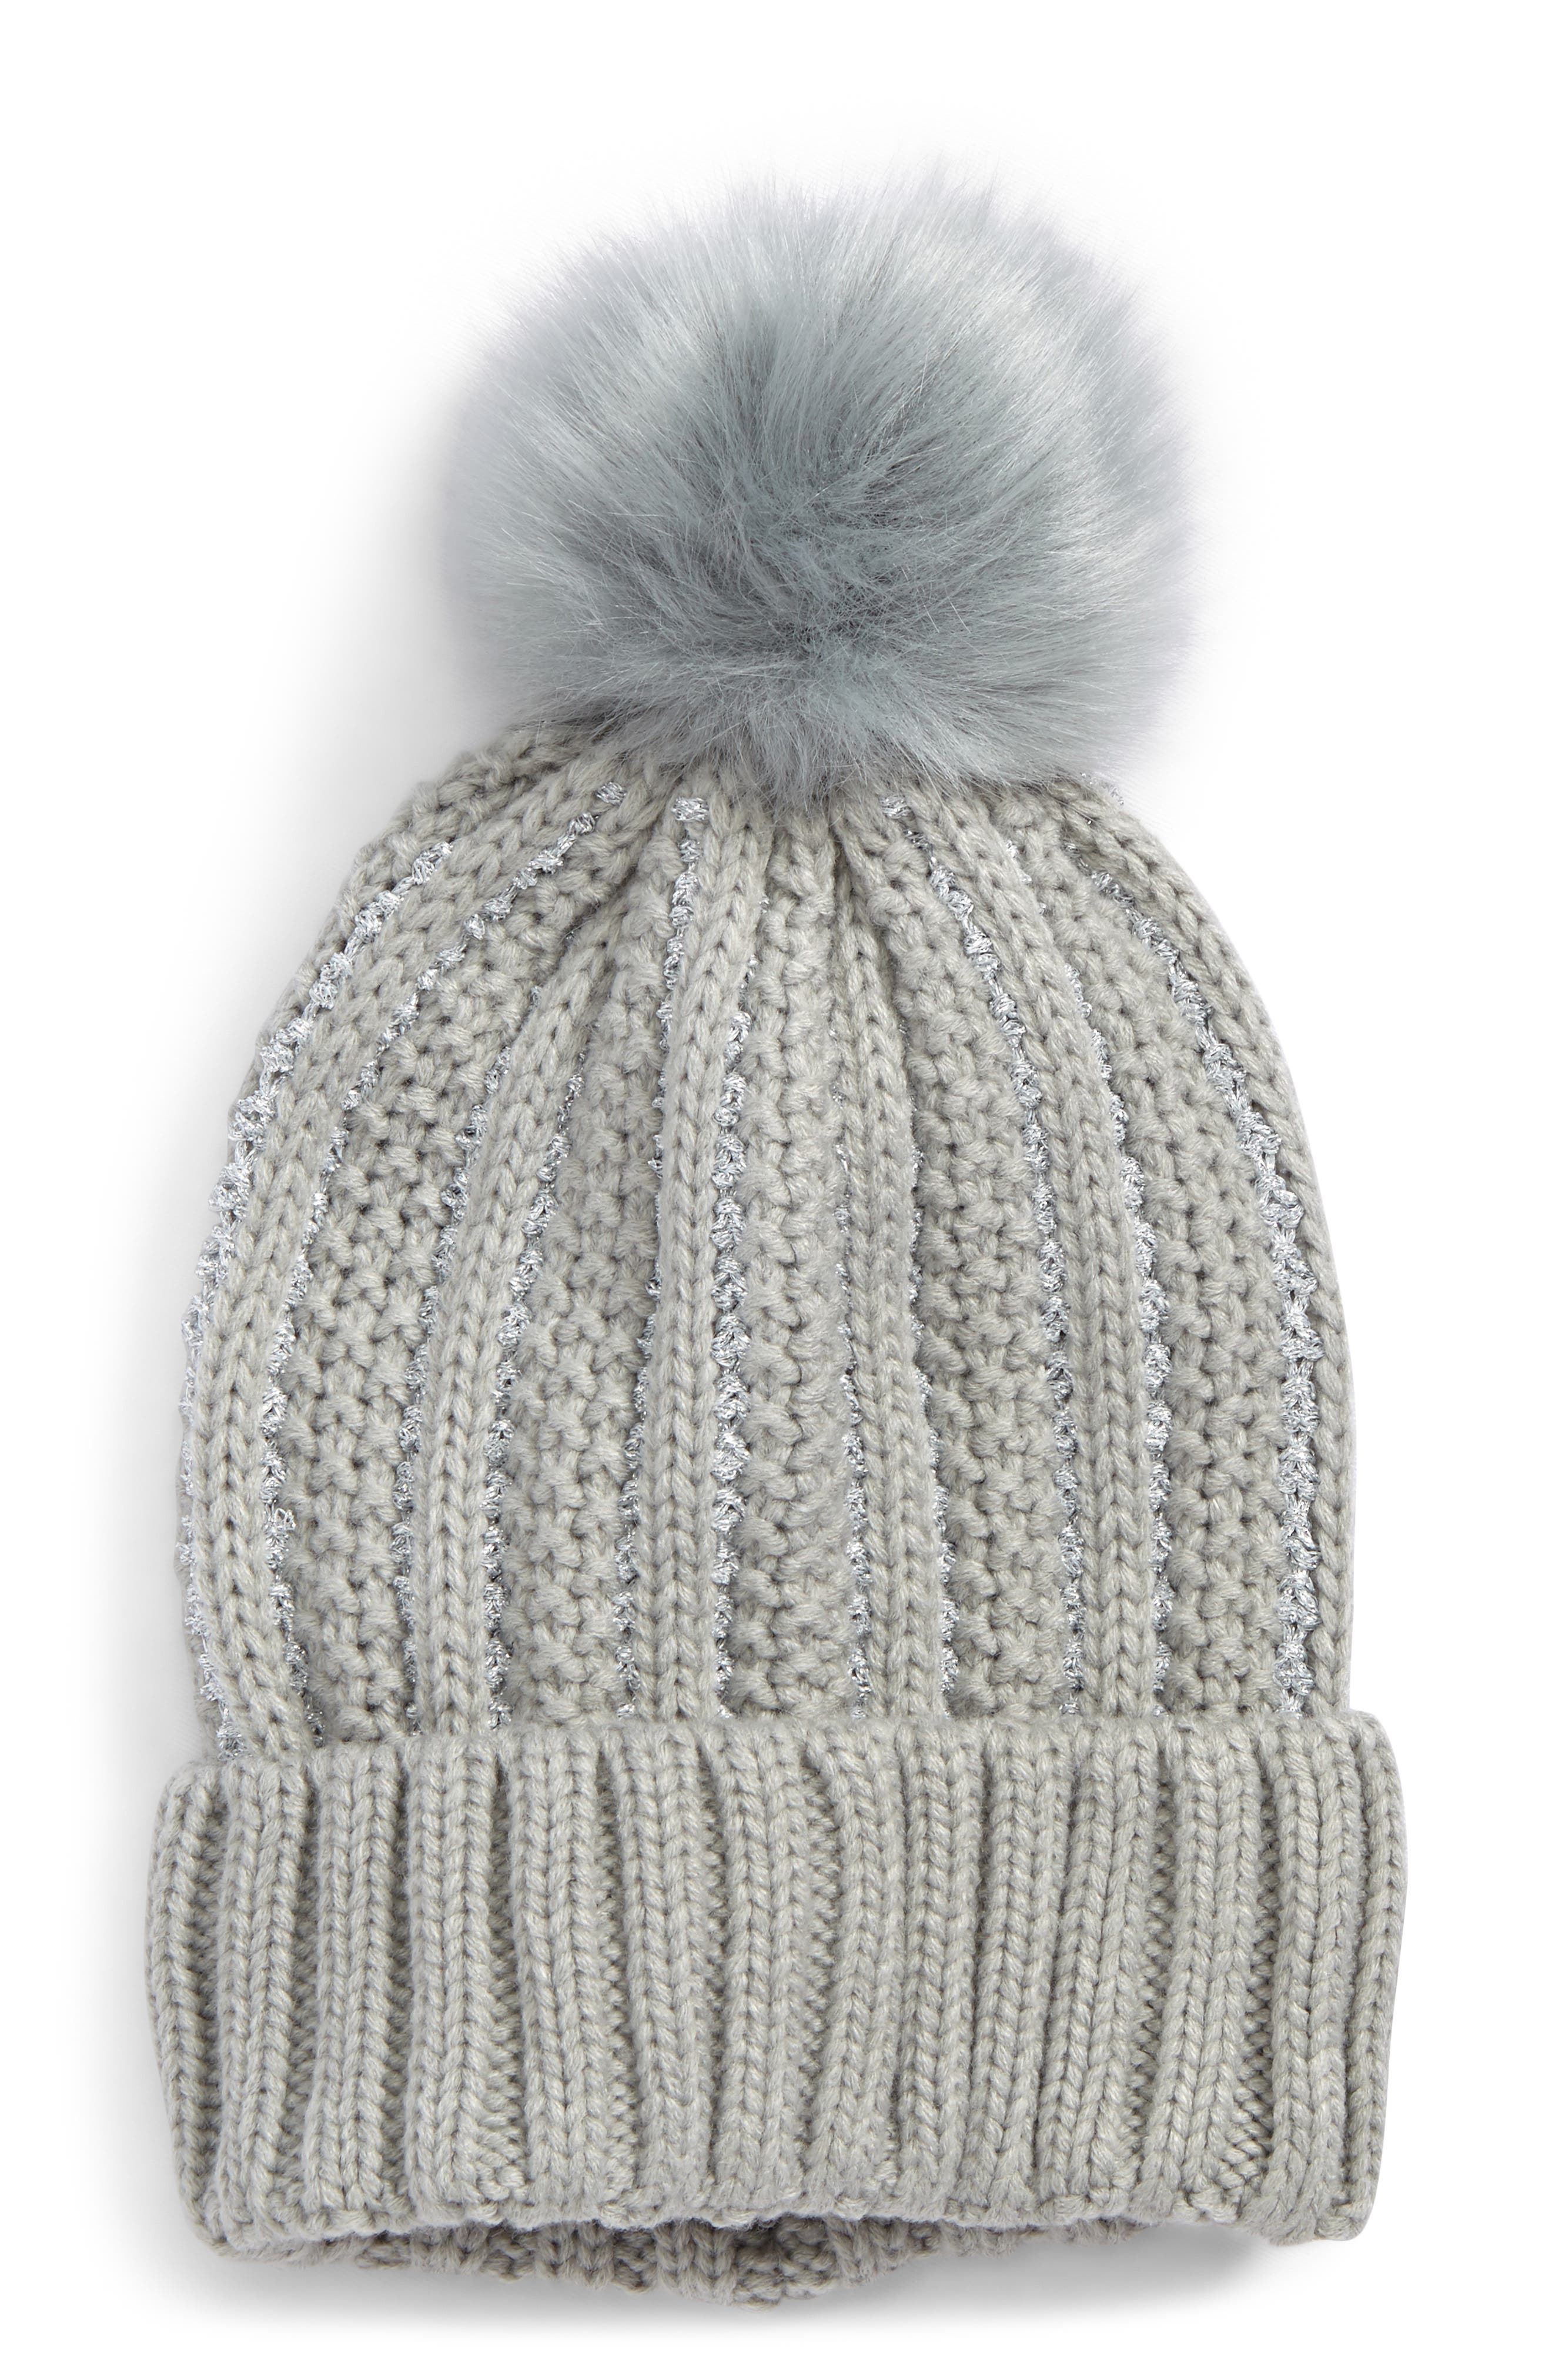 Metallic Knit Beanie with Faux Fur Pompom,                             Main thumbnail 1, color,                             020